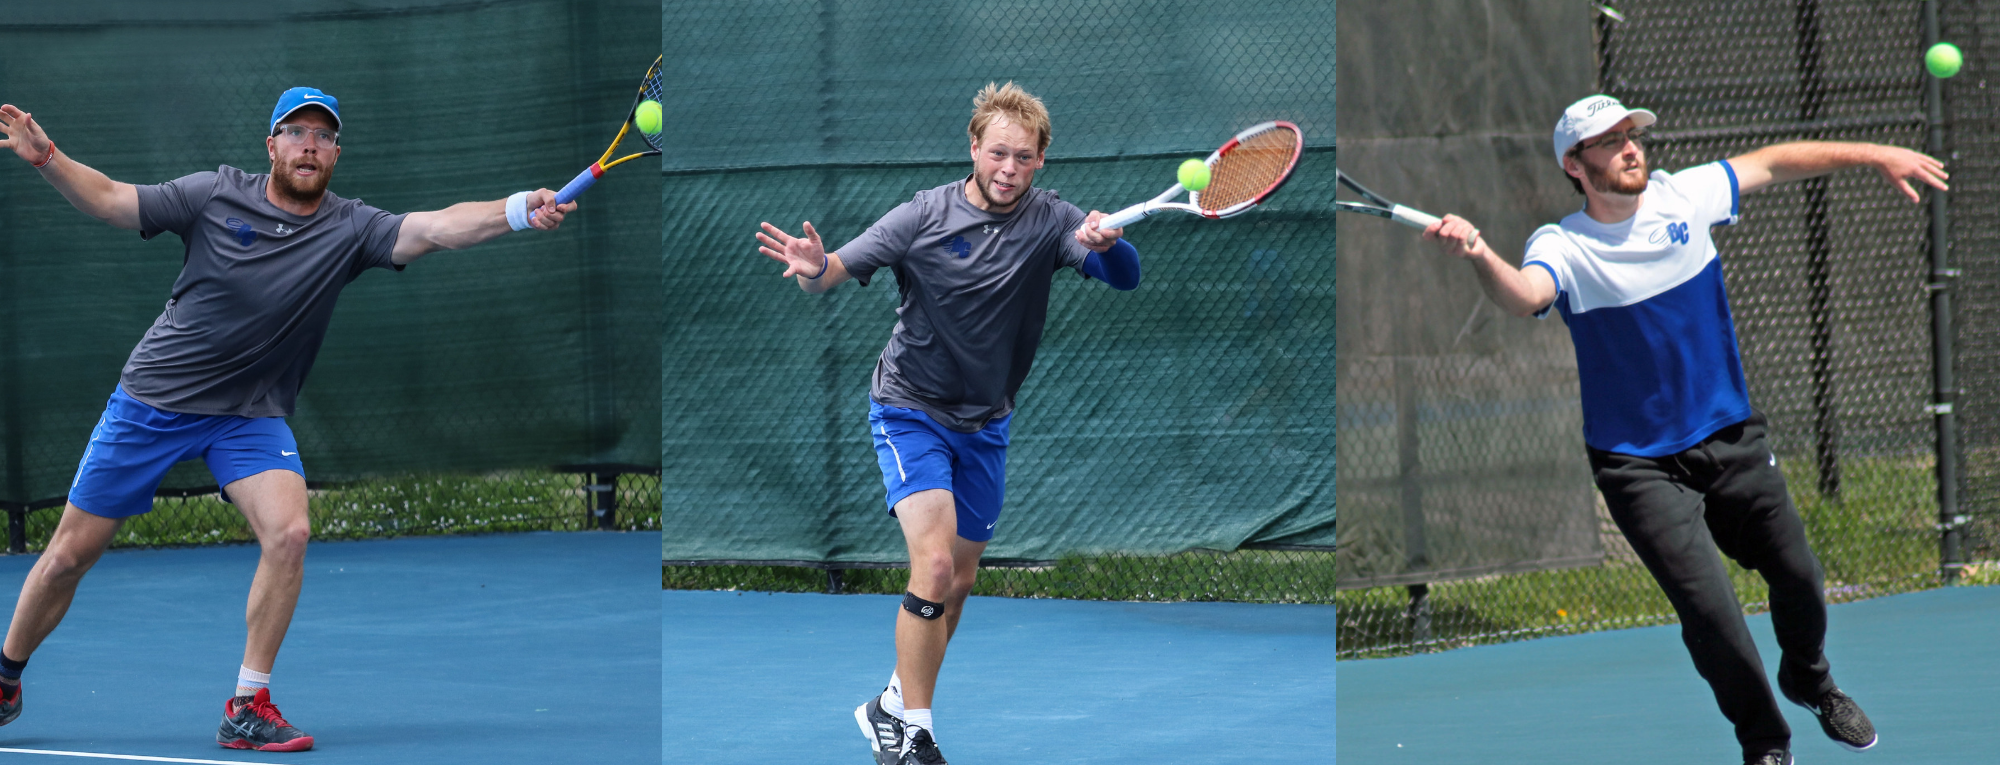 Mittring and Hengst Win Singles and Doubles Matches on Senior Day